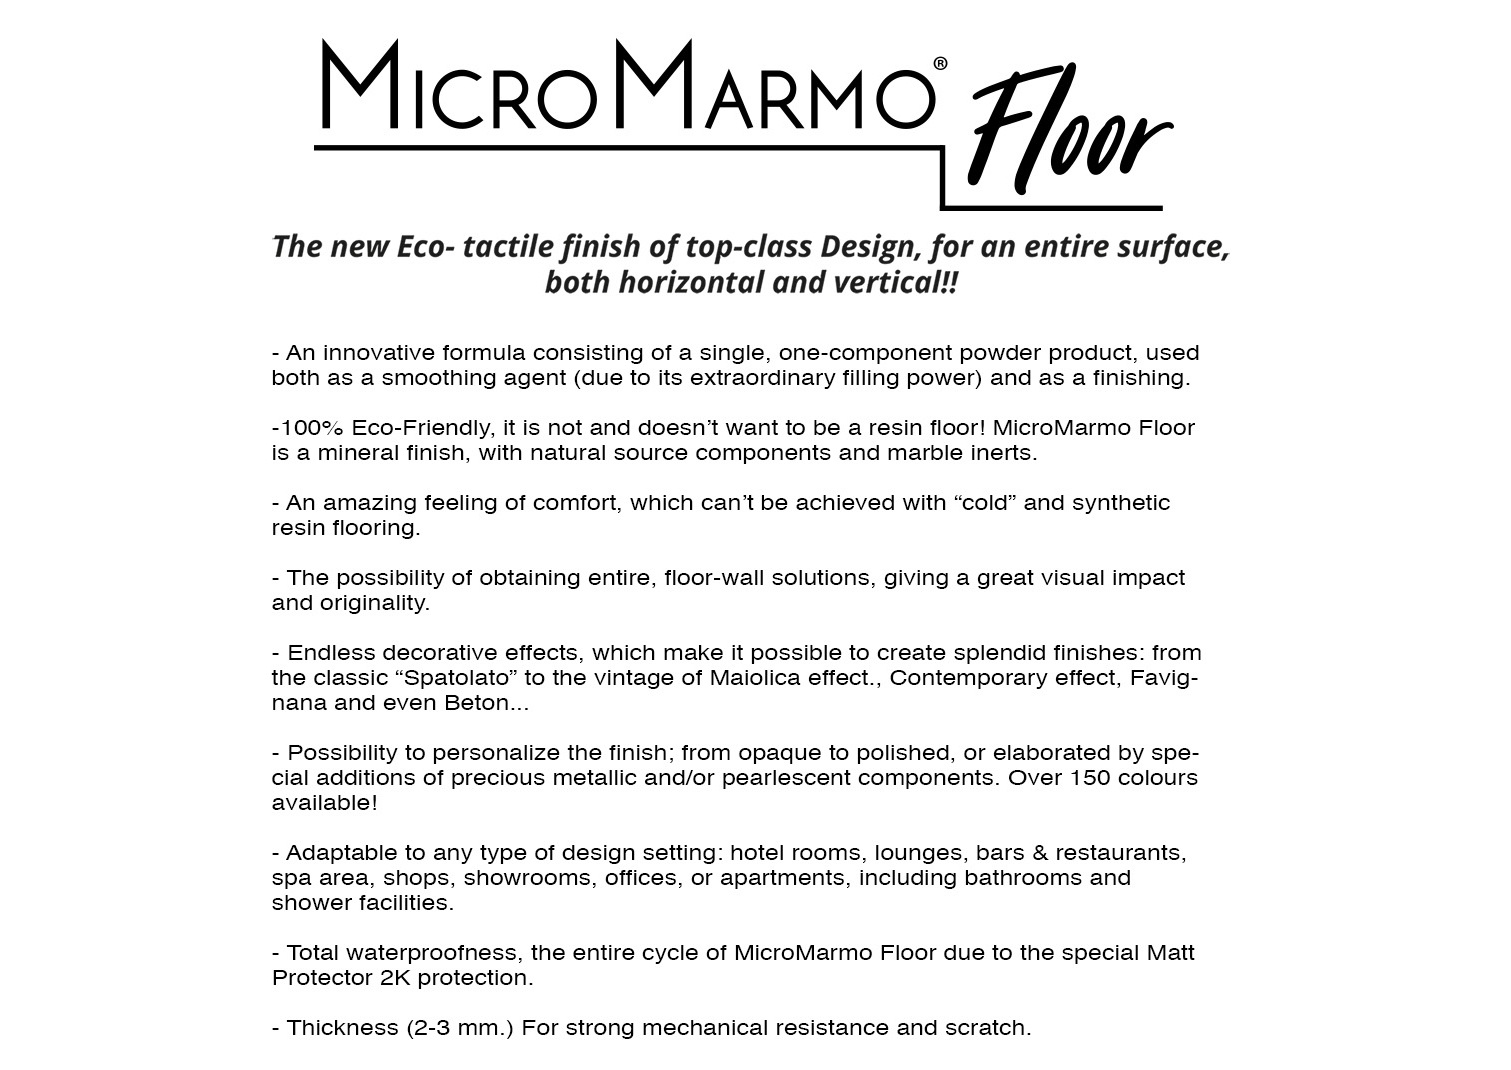 micromarmo-for-floor-1.jpg